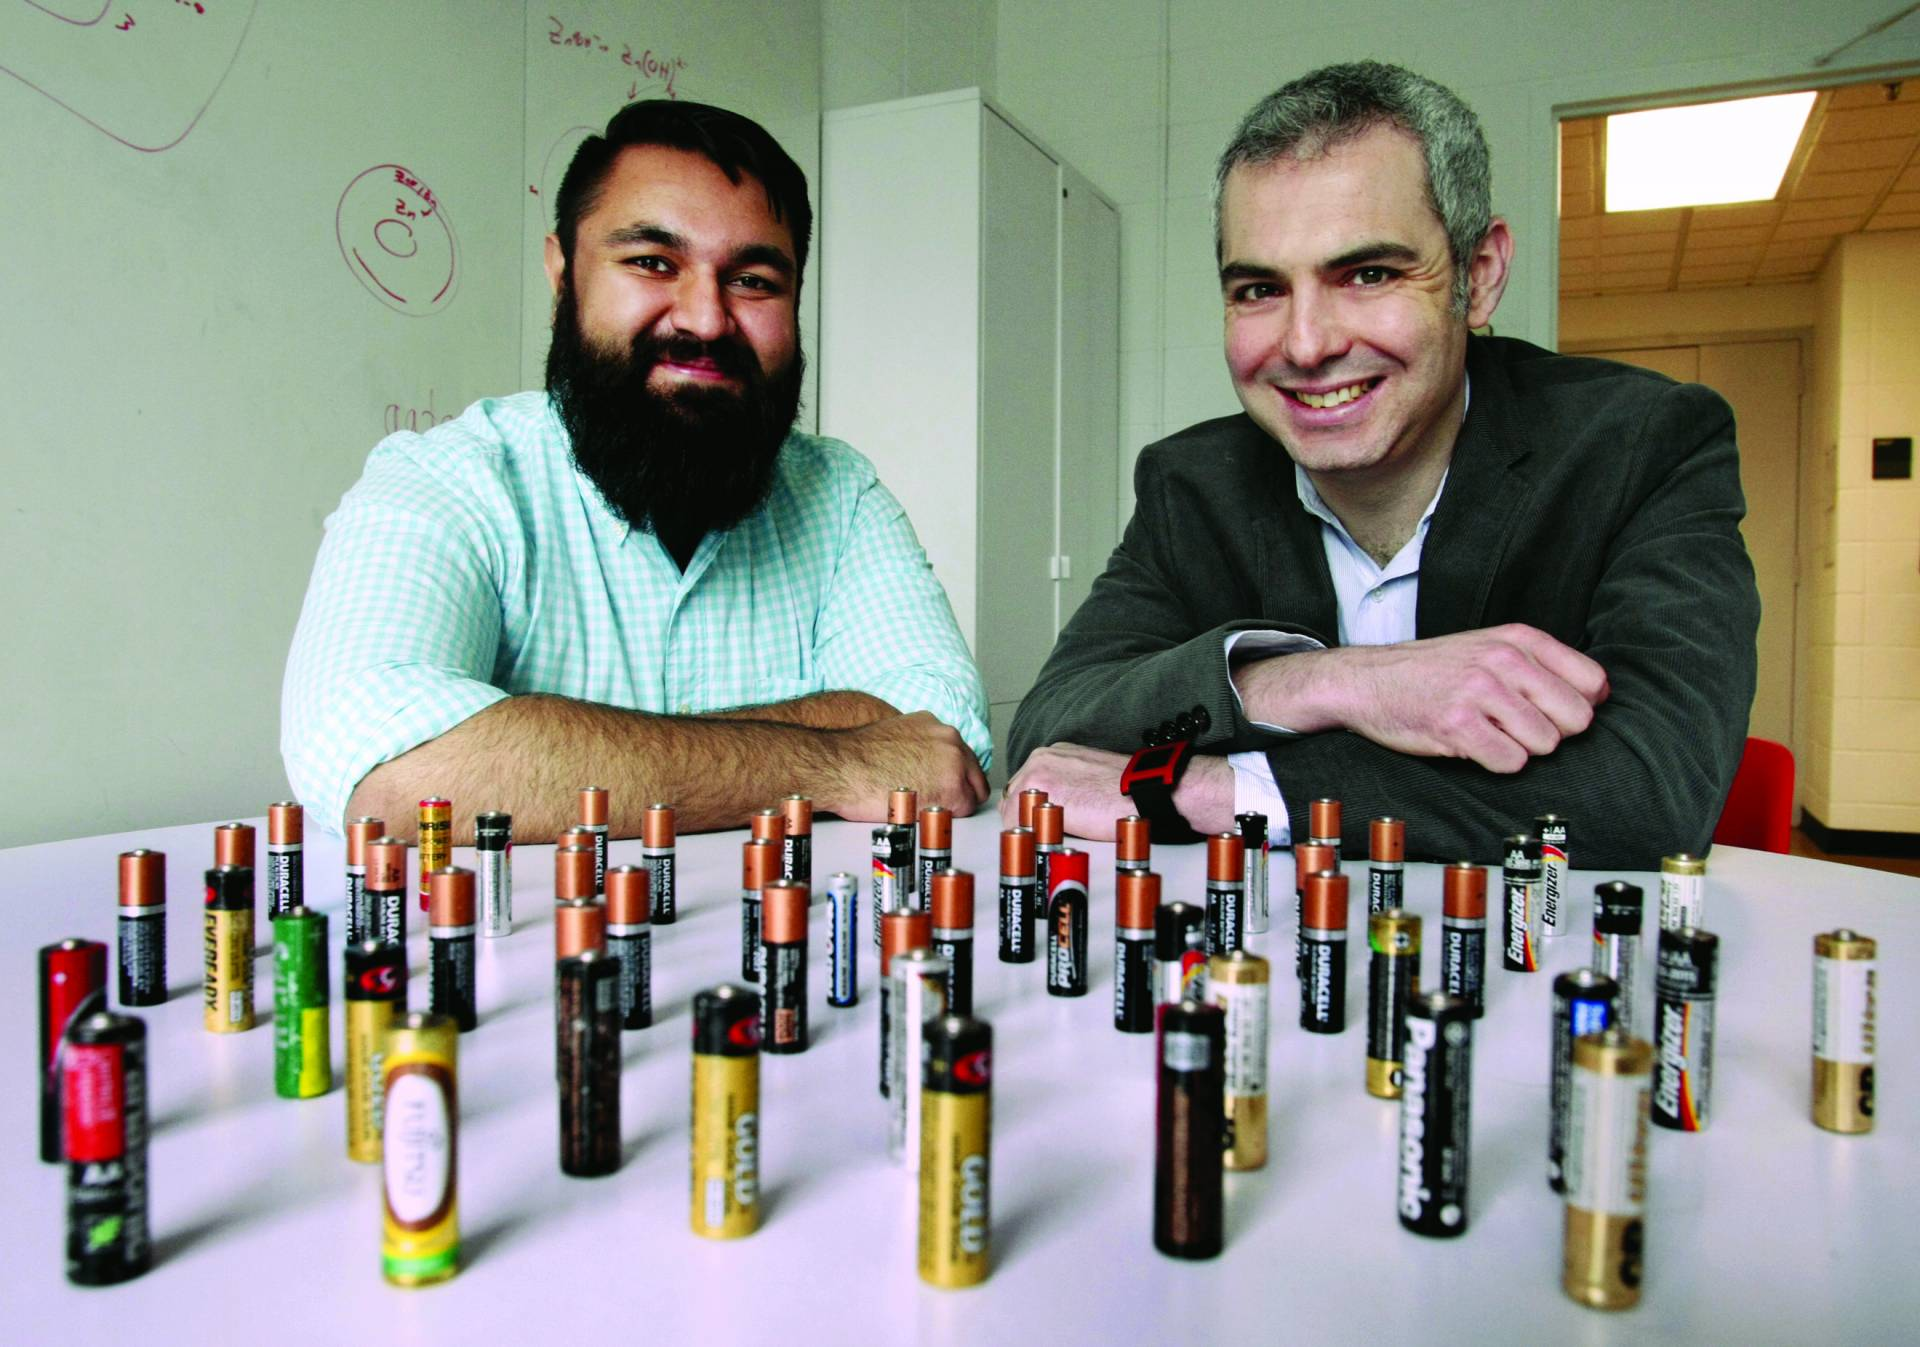 Photo showing two Princeton University researchers sitting at a table on which are displayed AA batteries that they use in their research.